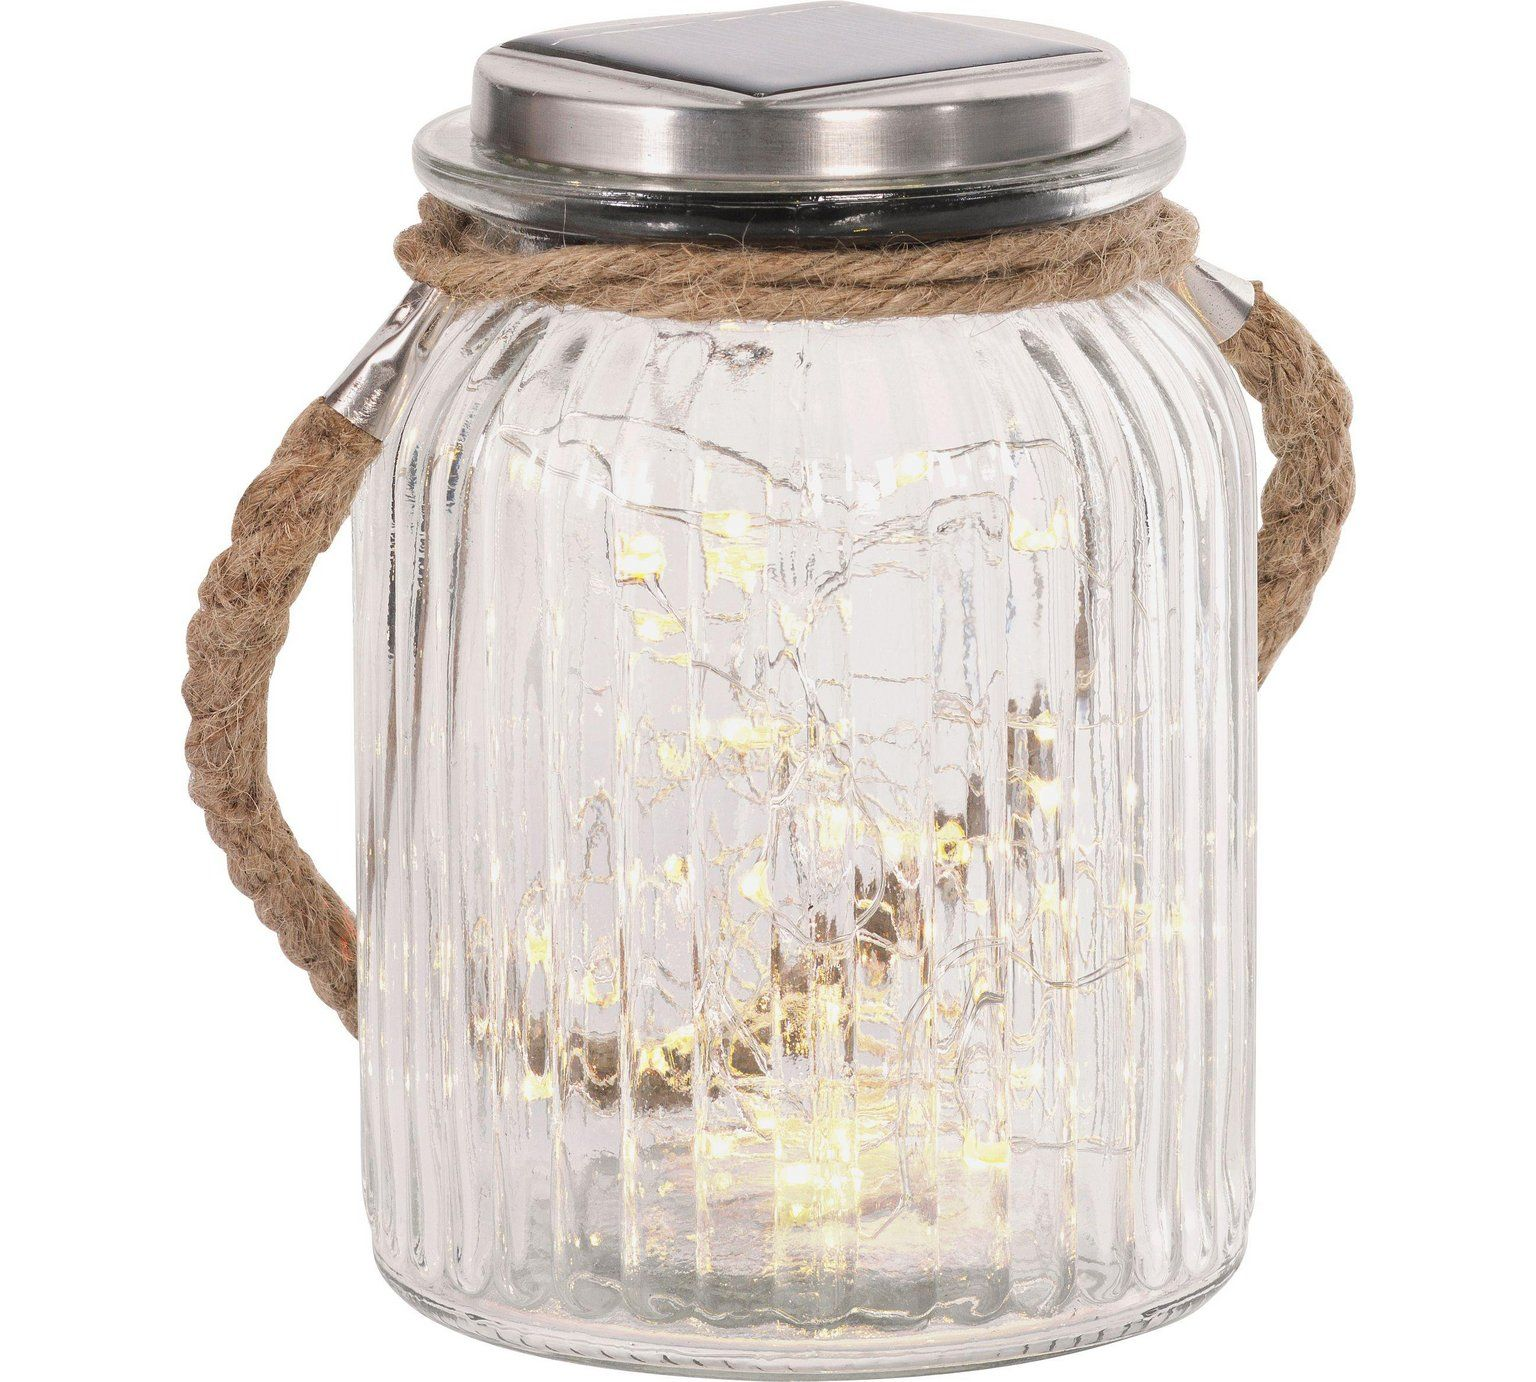 Buy Heart of House Rio Solar Glass Rope Jar with 50 LED